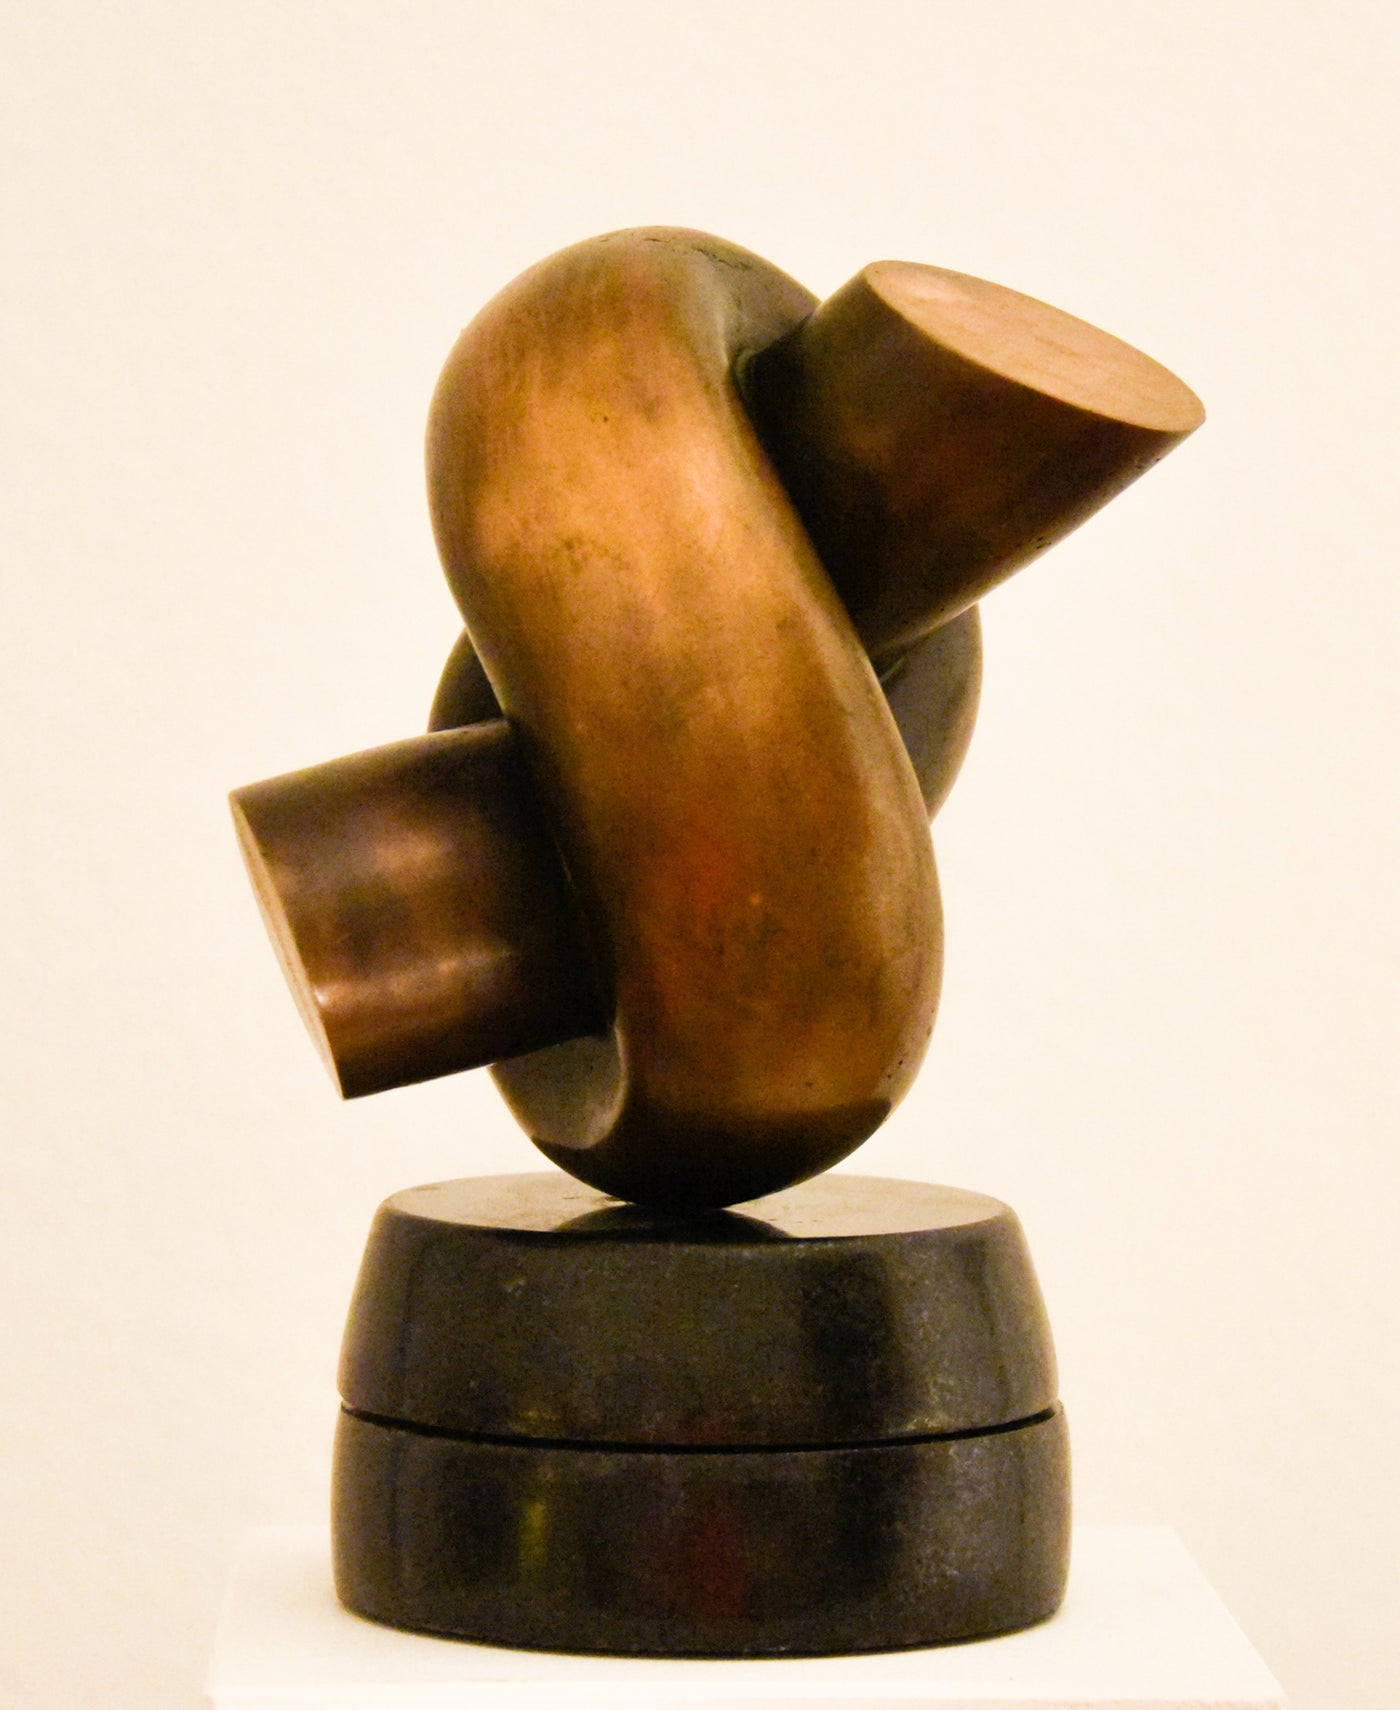 Abstract bronze sculpture art for sale